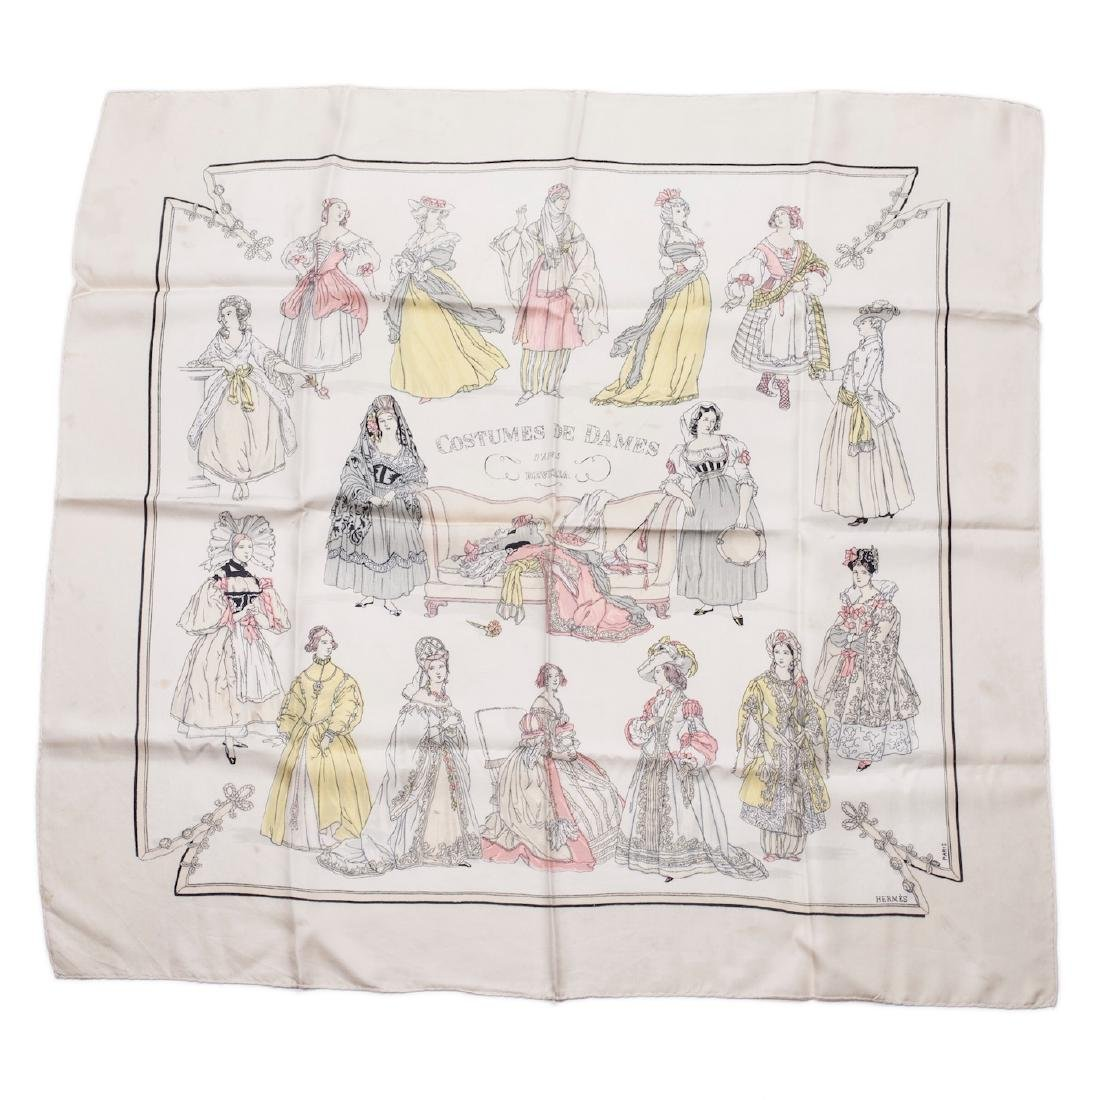 "Highly collectable Hermes ""Costumed de dames"" silk"